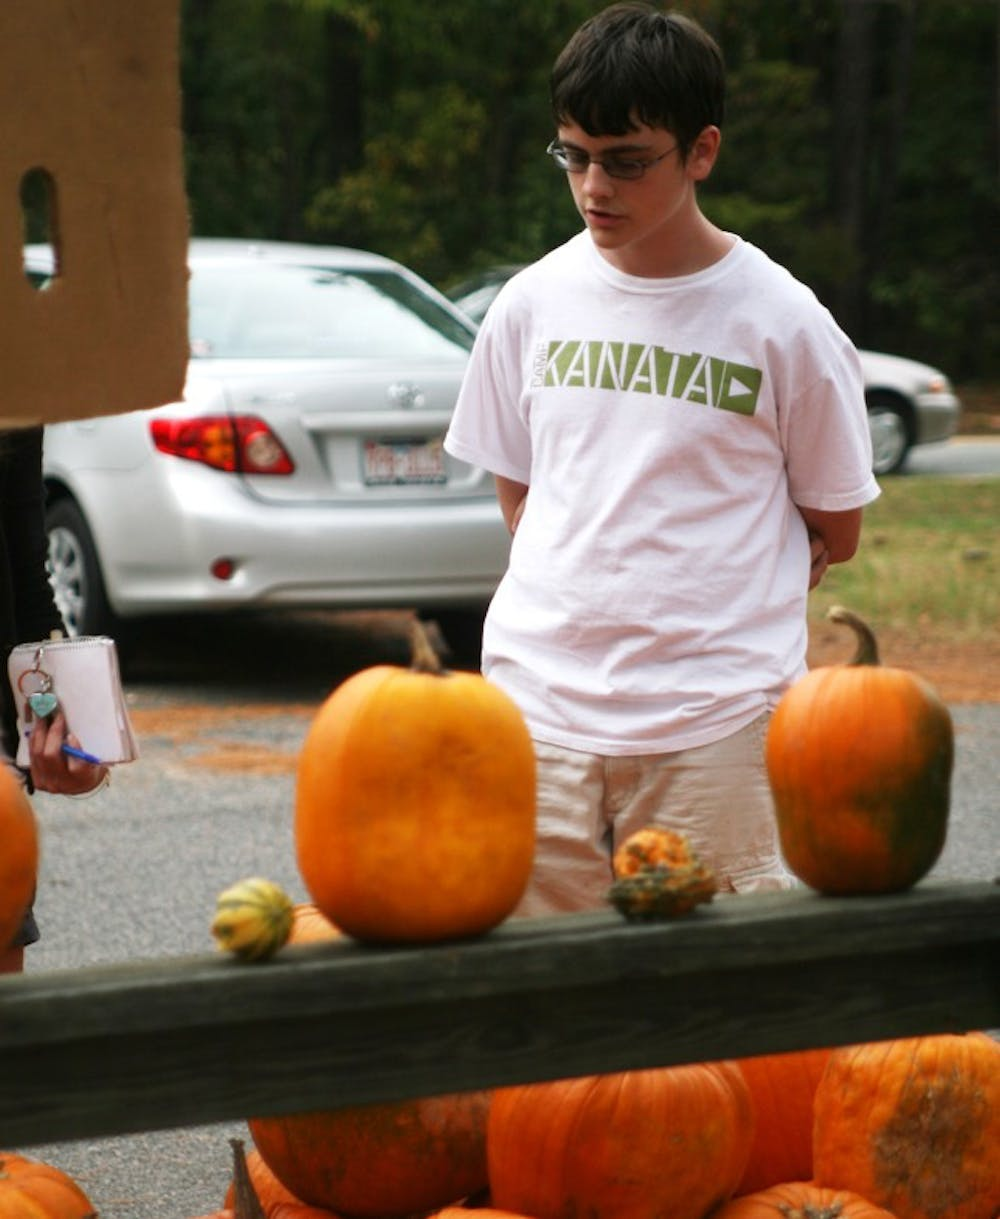 Evan Brown, 14, sells pumpkins at Amity United Methodist Church. The sale is a fundraiser for Brown's church and Boy Scouts troop.